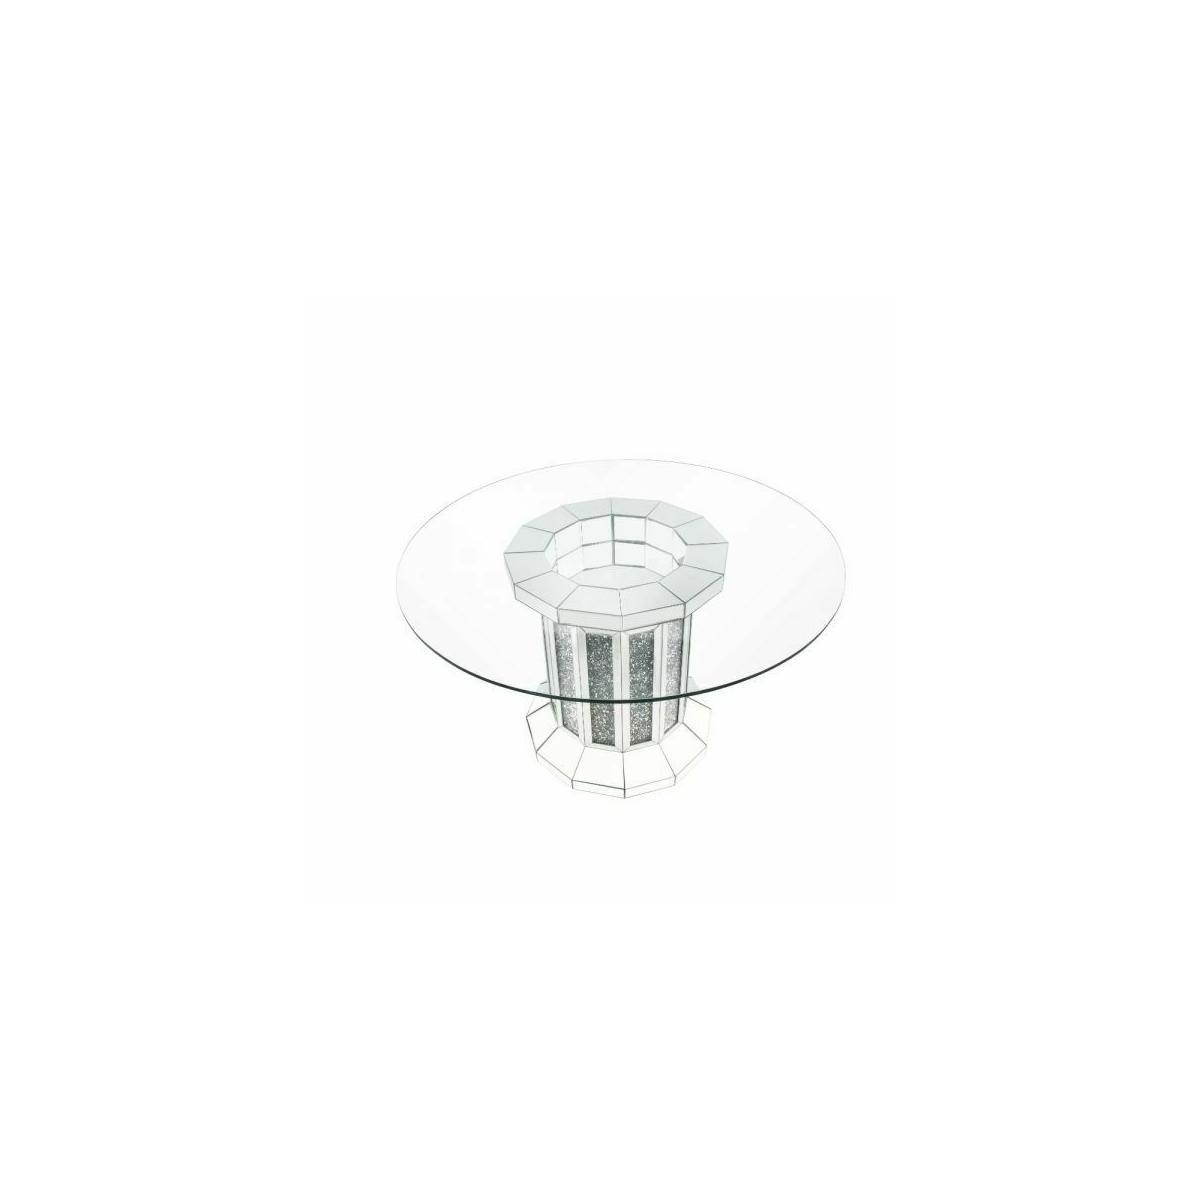 ACME Noralie Dining Table - 72140 - Glam, Vintage - Mirror, Glass, MDF, Faux Diamonds (Acrylic) - Mirrored and Faux Diamonds